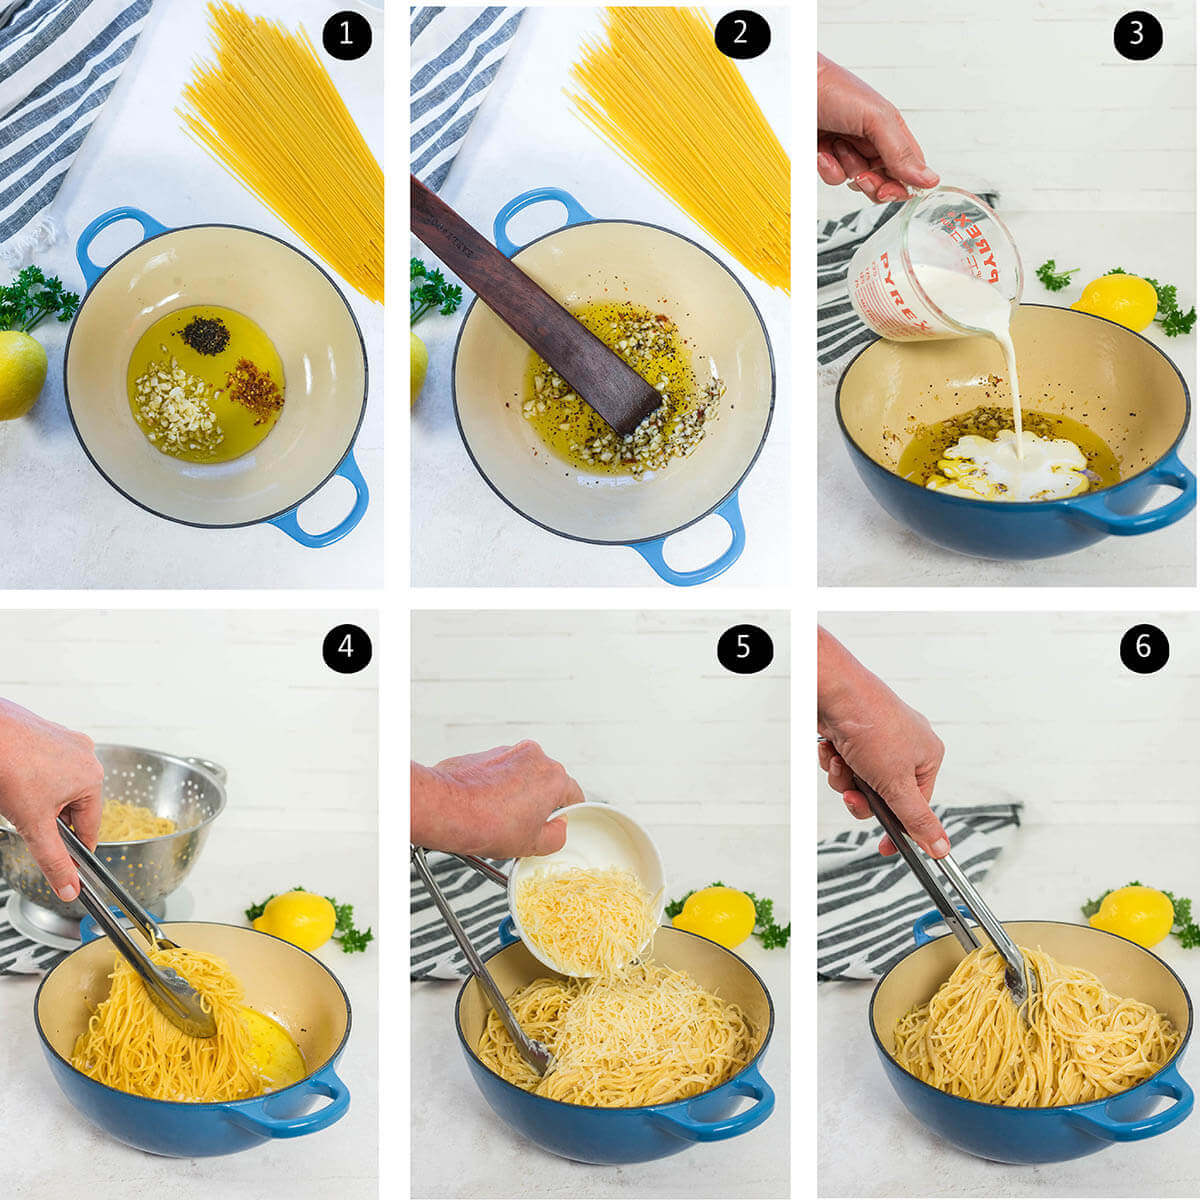 Step by step photos showing how to make Lemon Garlic Pasta Recipe